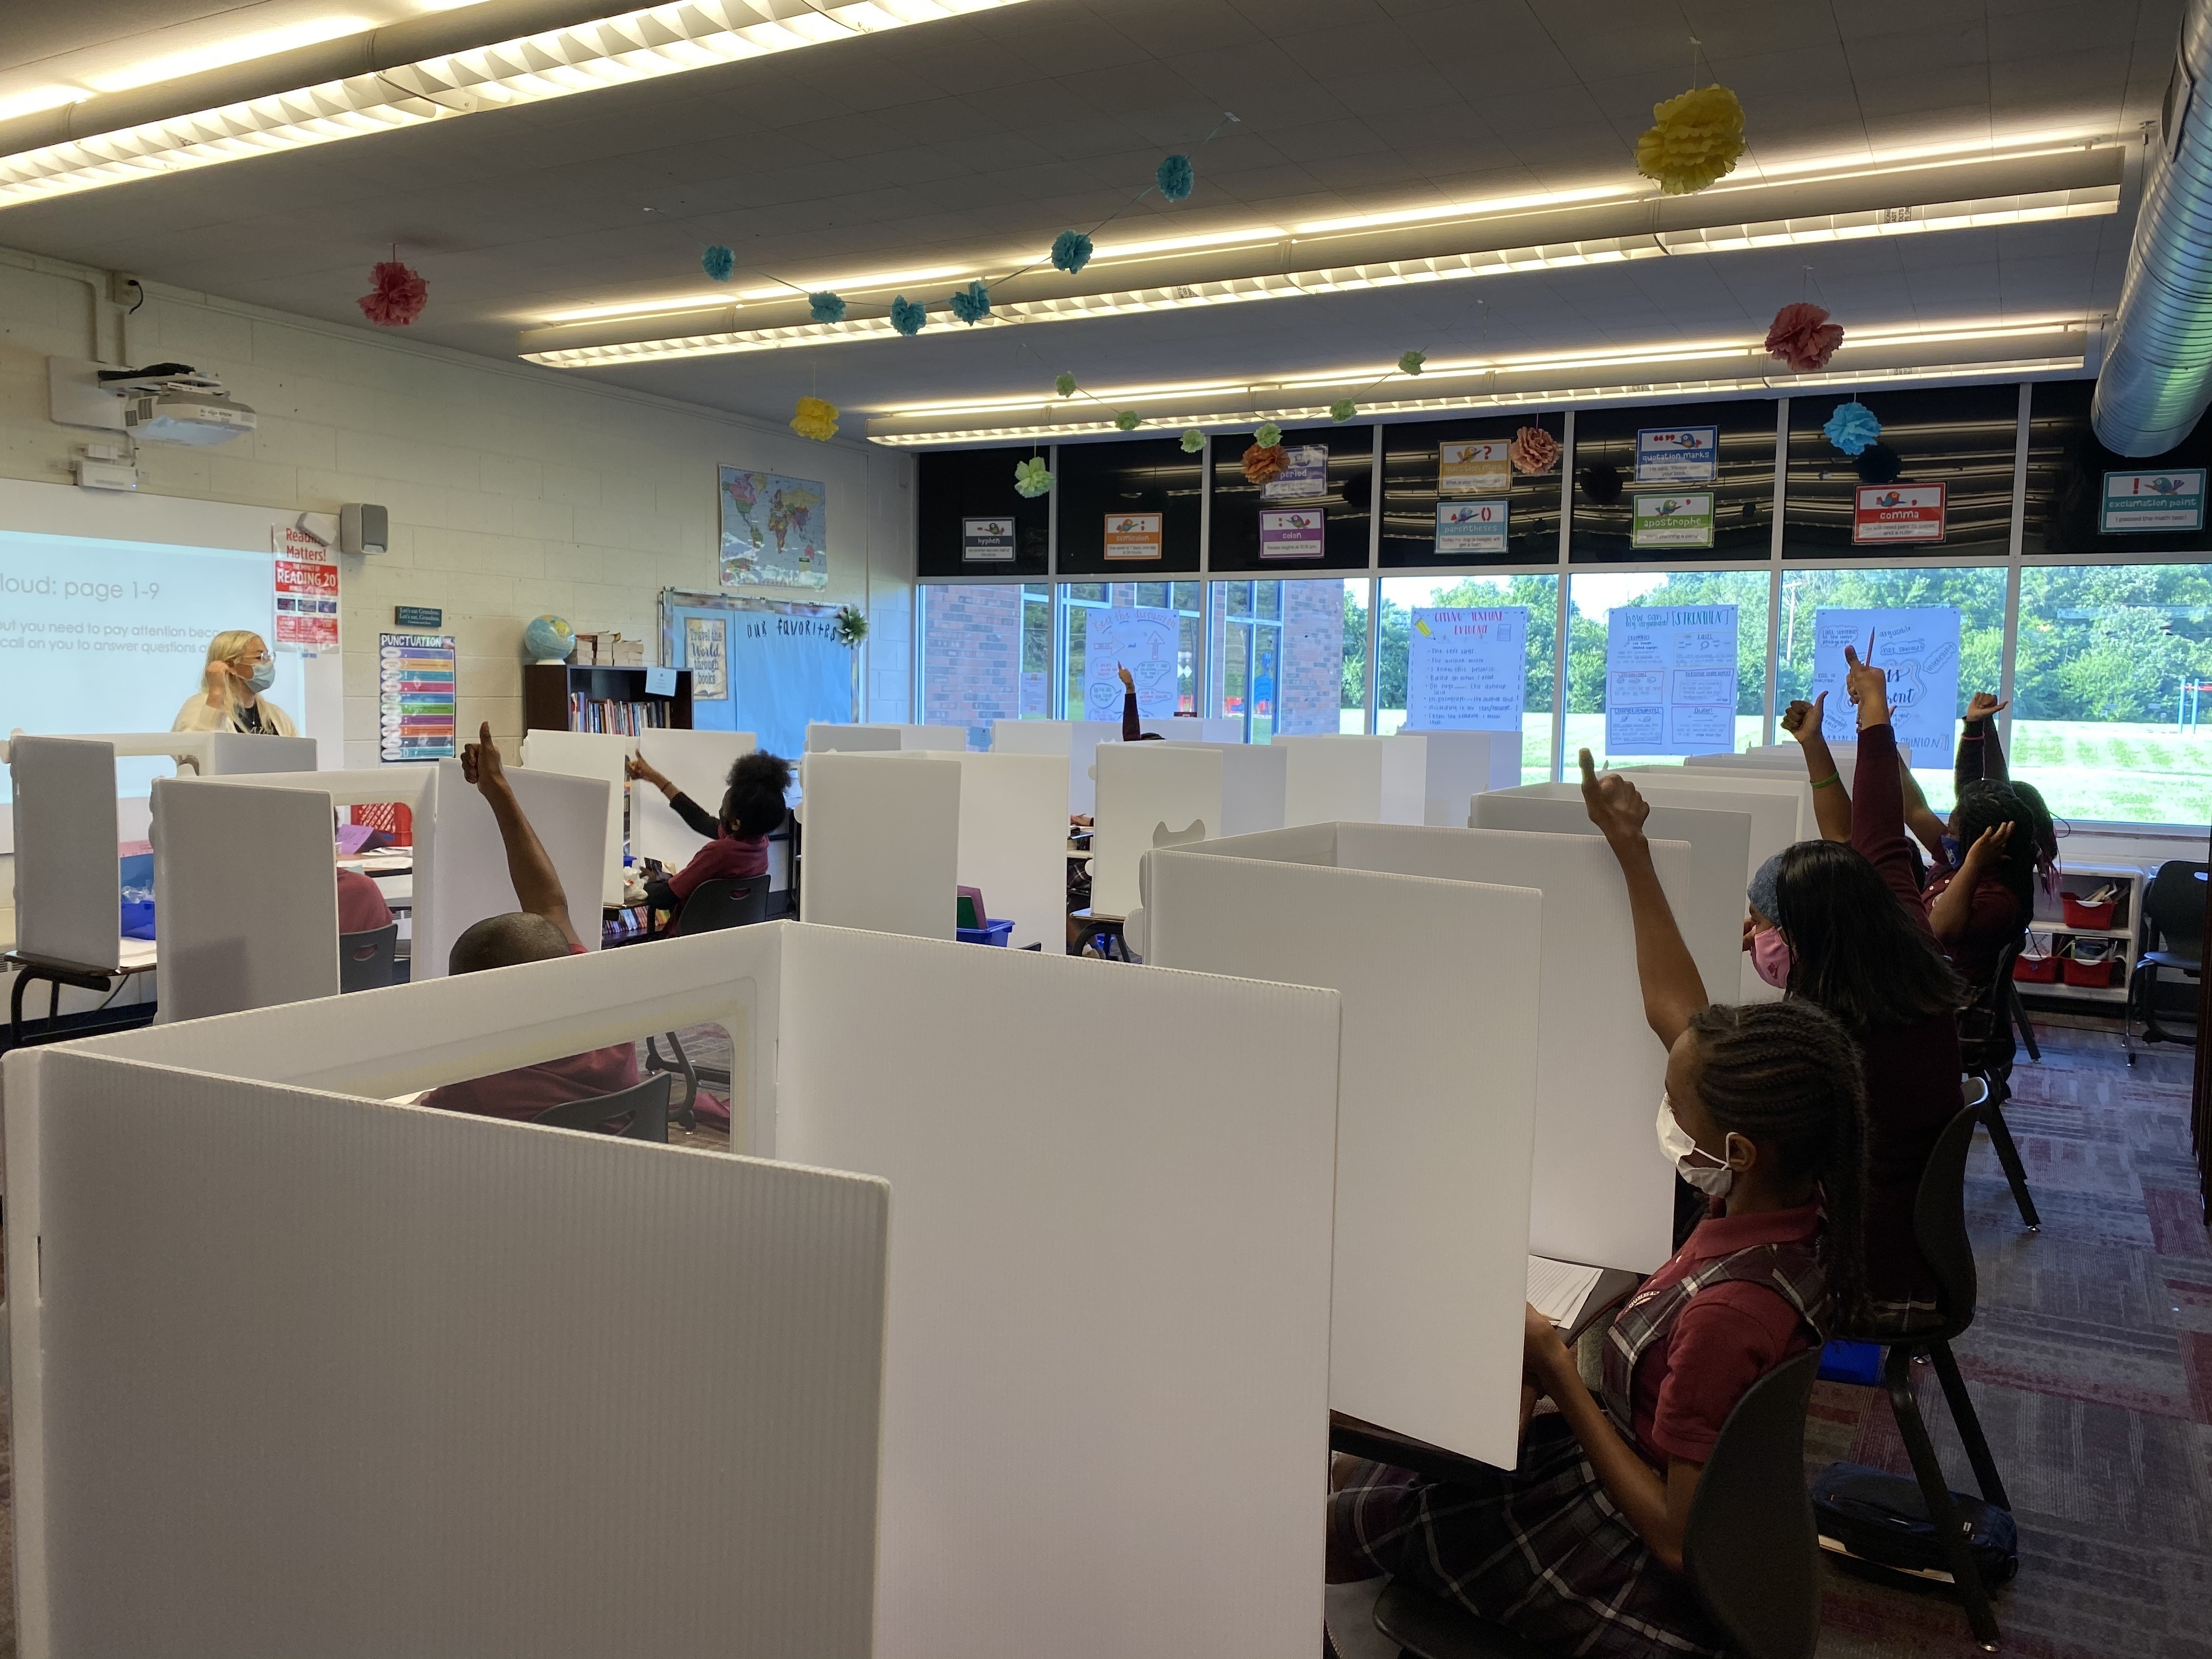 Students separated by partitions raise their hands during class. The teacher stands at the front.